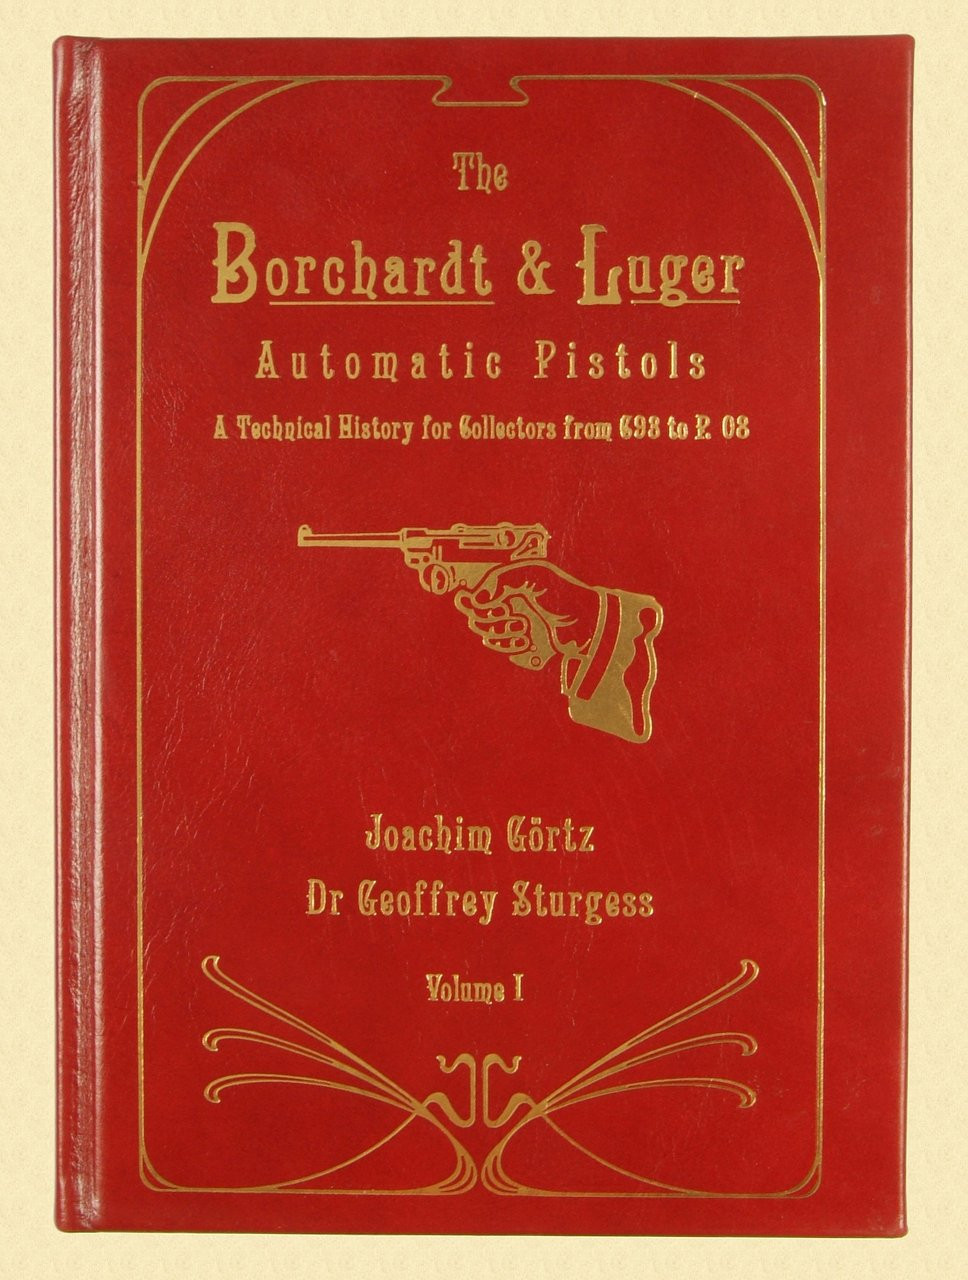 THE BORCHARDT & LUGER AUTOMATIC PISTOLS - DELUXE